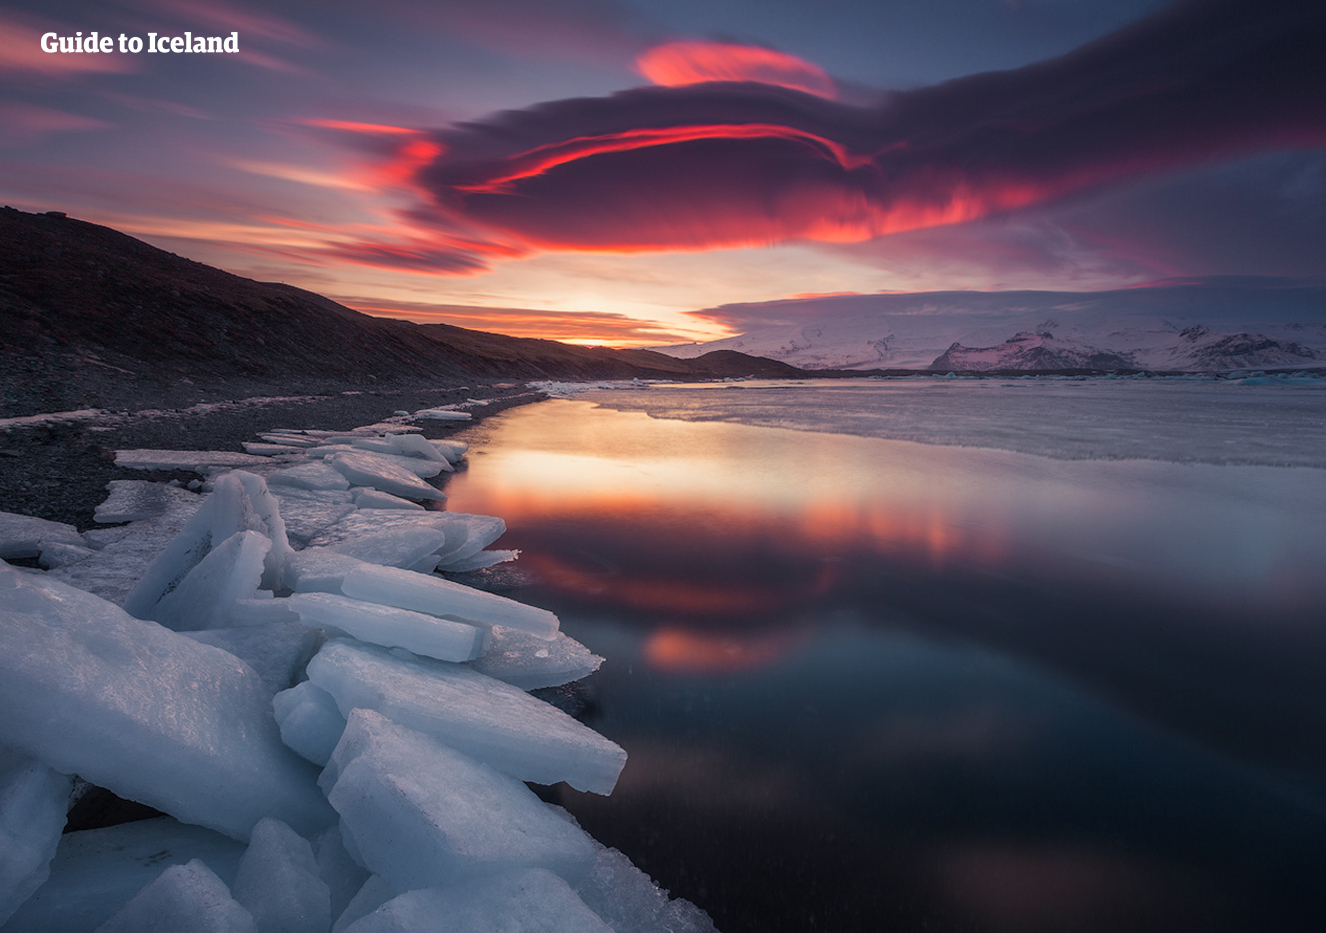 The red evening sky mirrored in the serene Jökulsárlón glacier lagoon